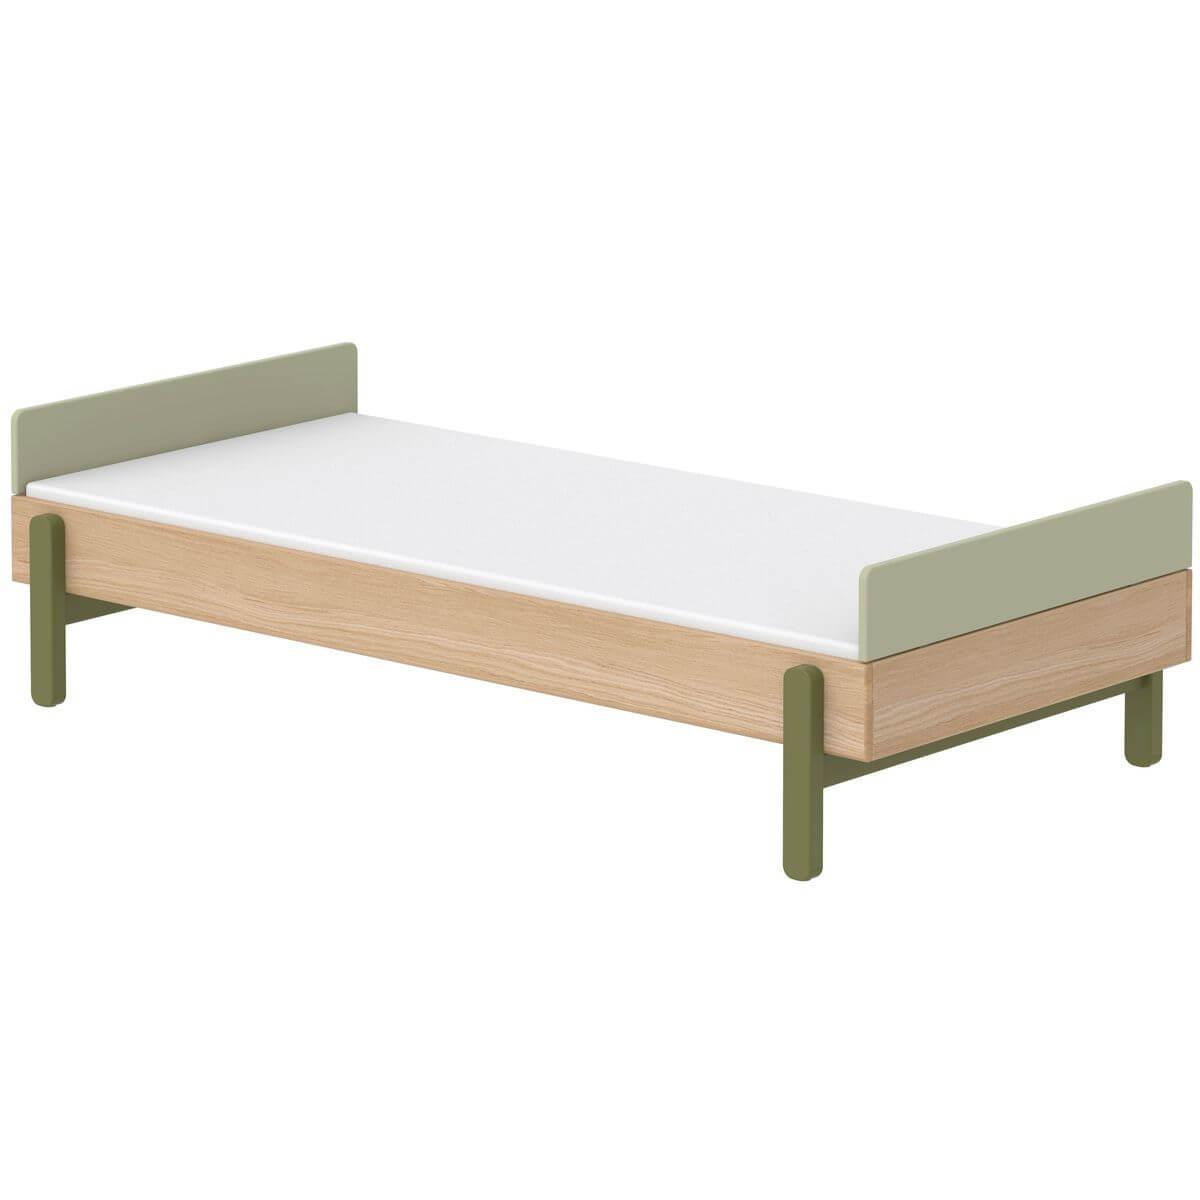 Cama simple 90x200cm POPSICLE Flexa roble-kiwi